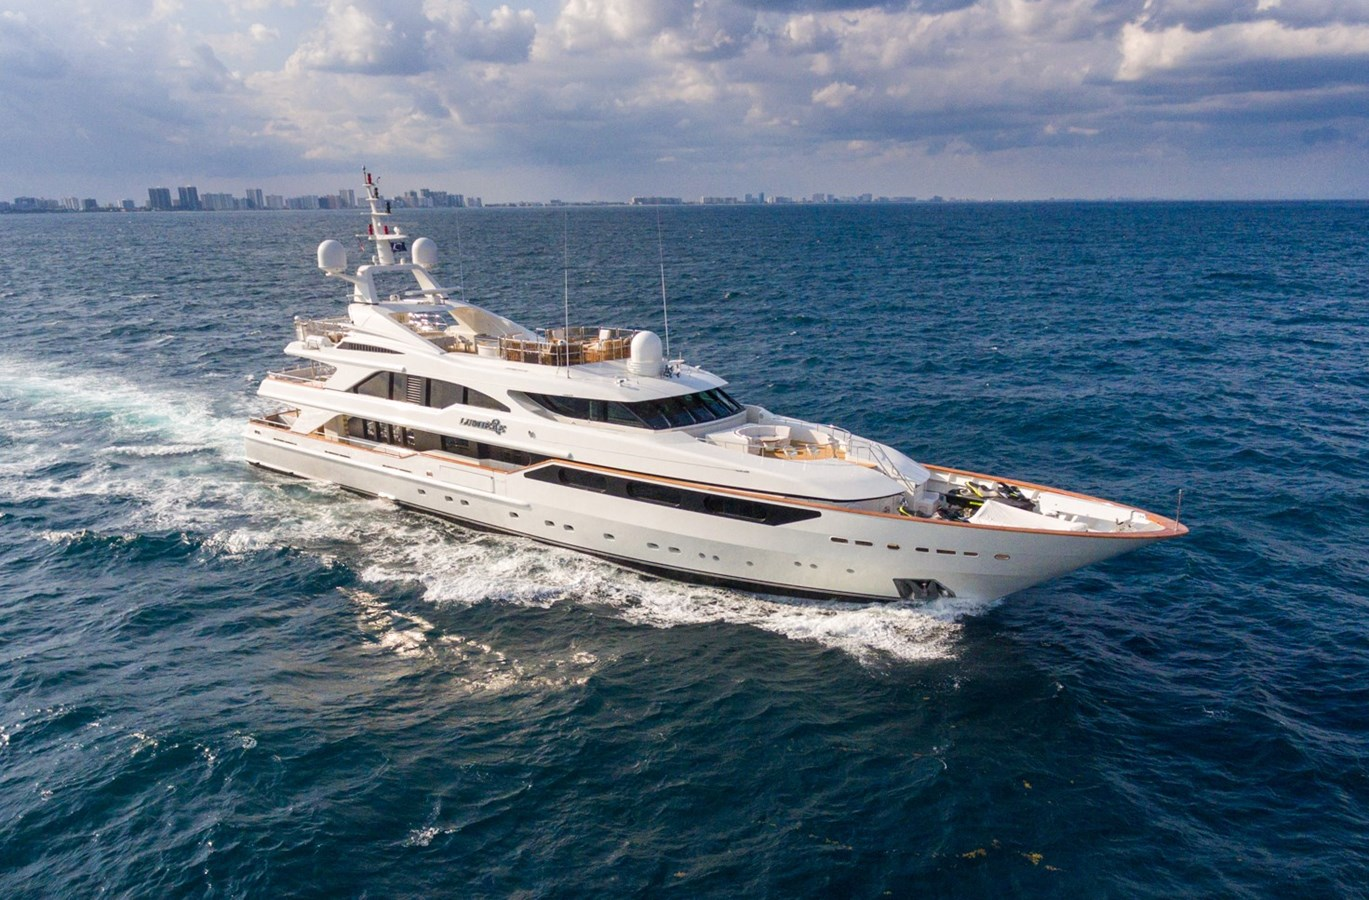 LUMIERE_Lo-2-credit Quin BISSET-16 profile maybe - 164 BENETTI For Sale